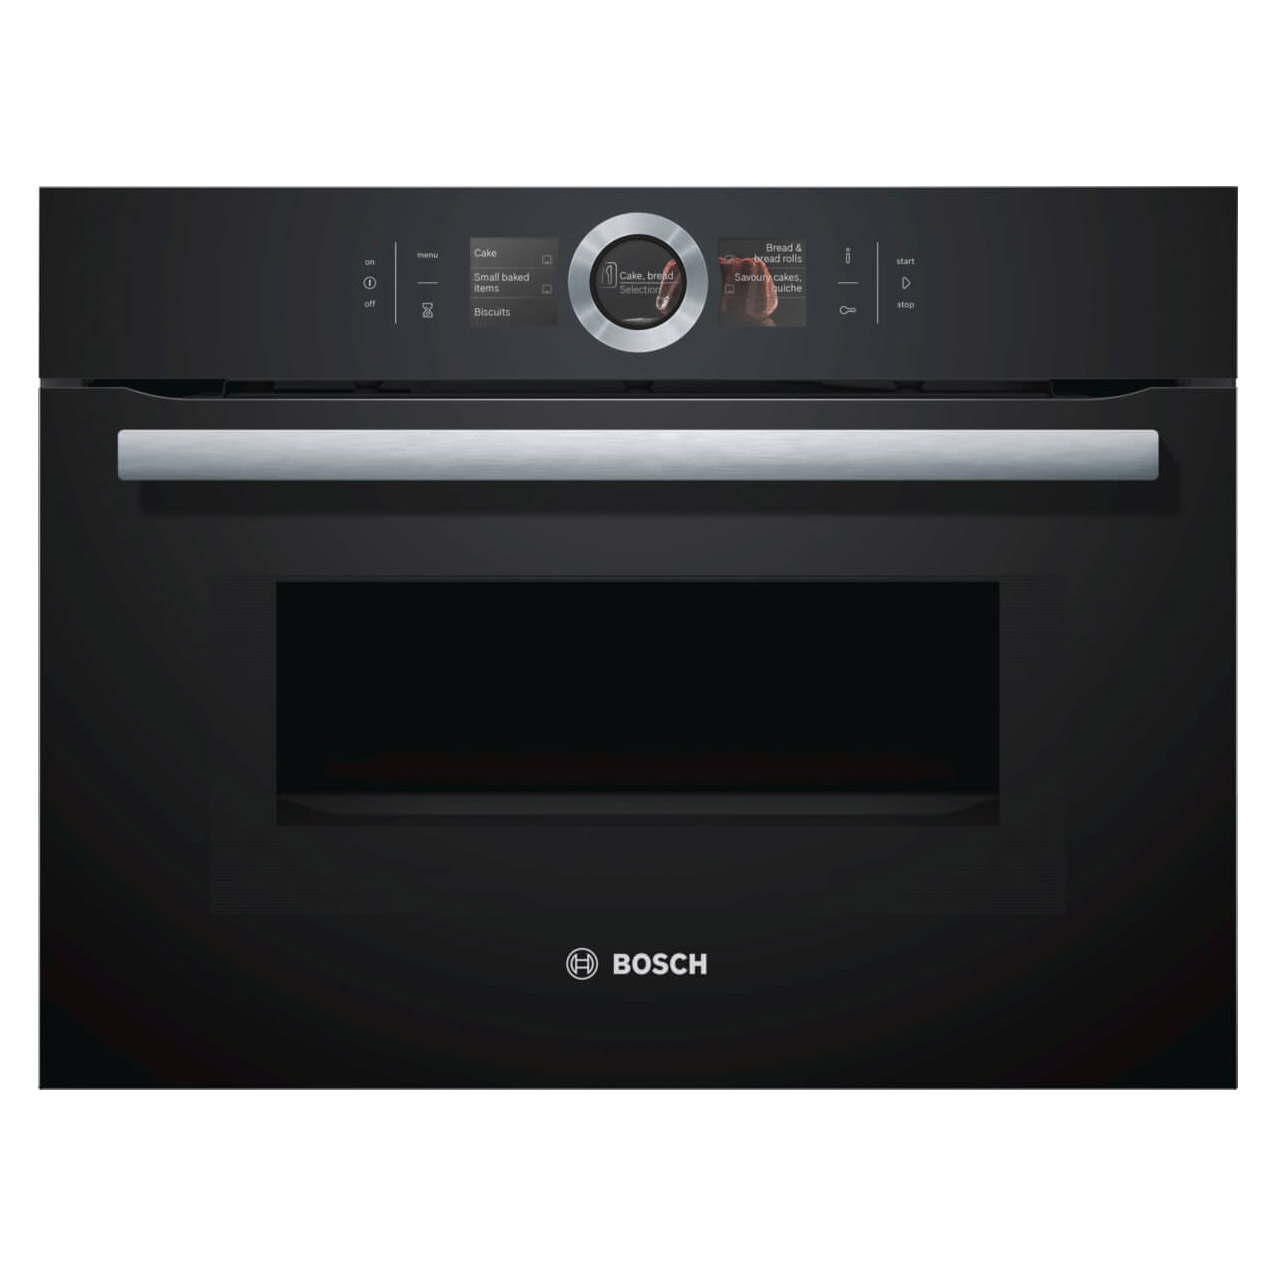 Bosch cmg656bb1b built in compact oven with microwave in black for Small built in microwave oven